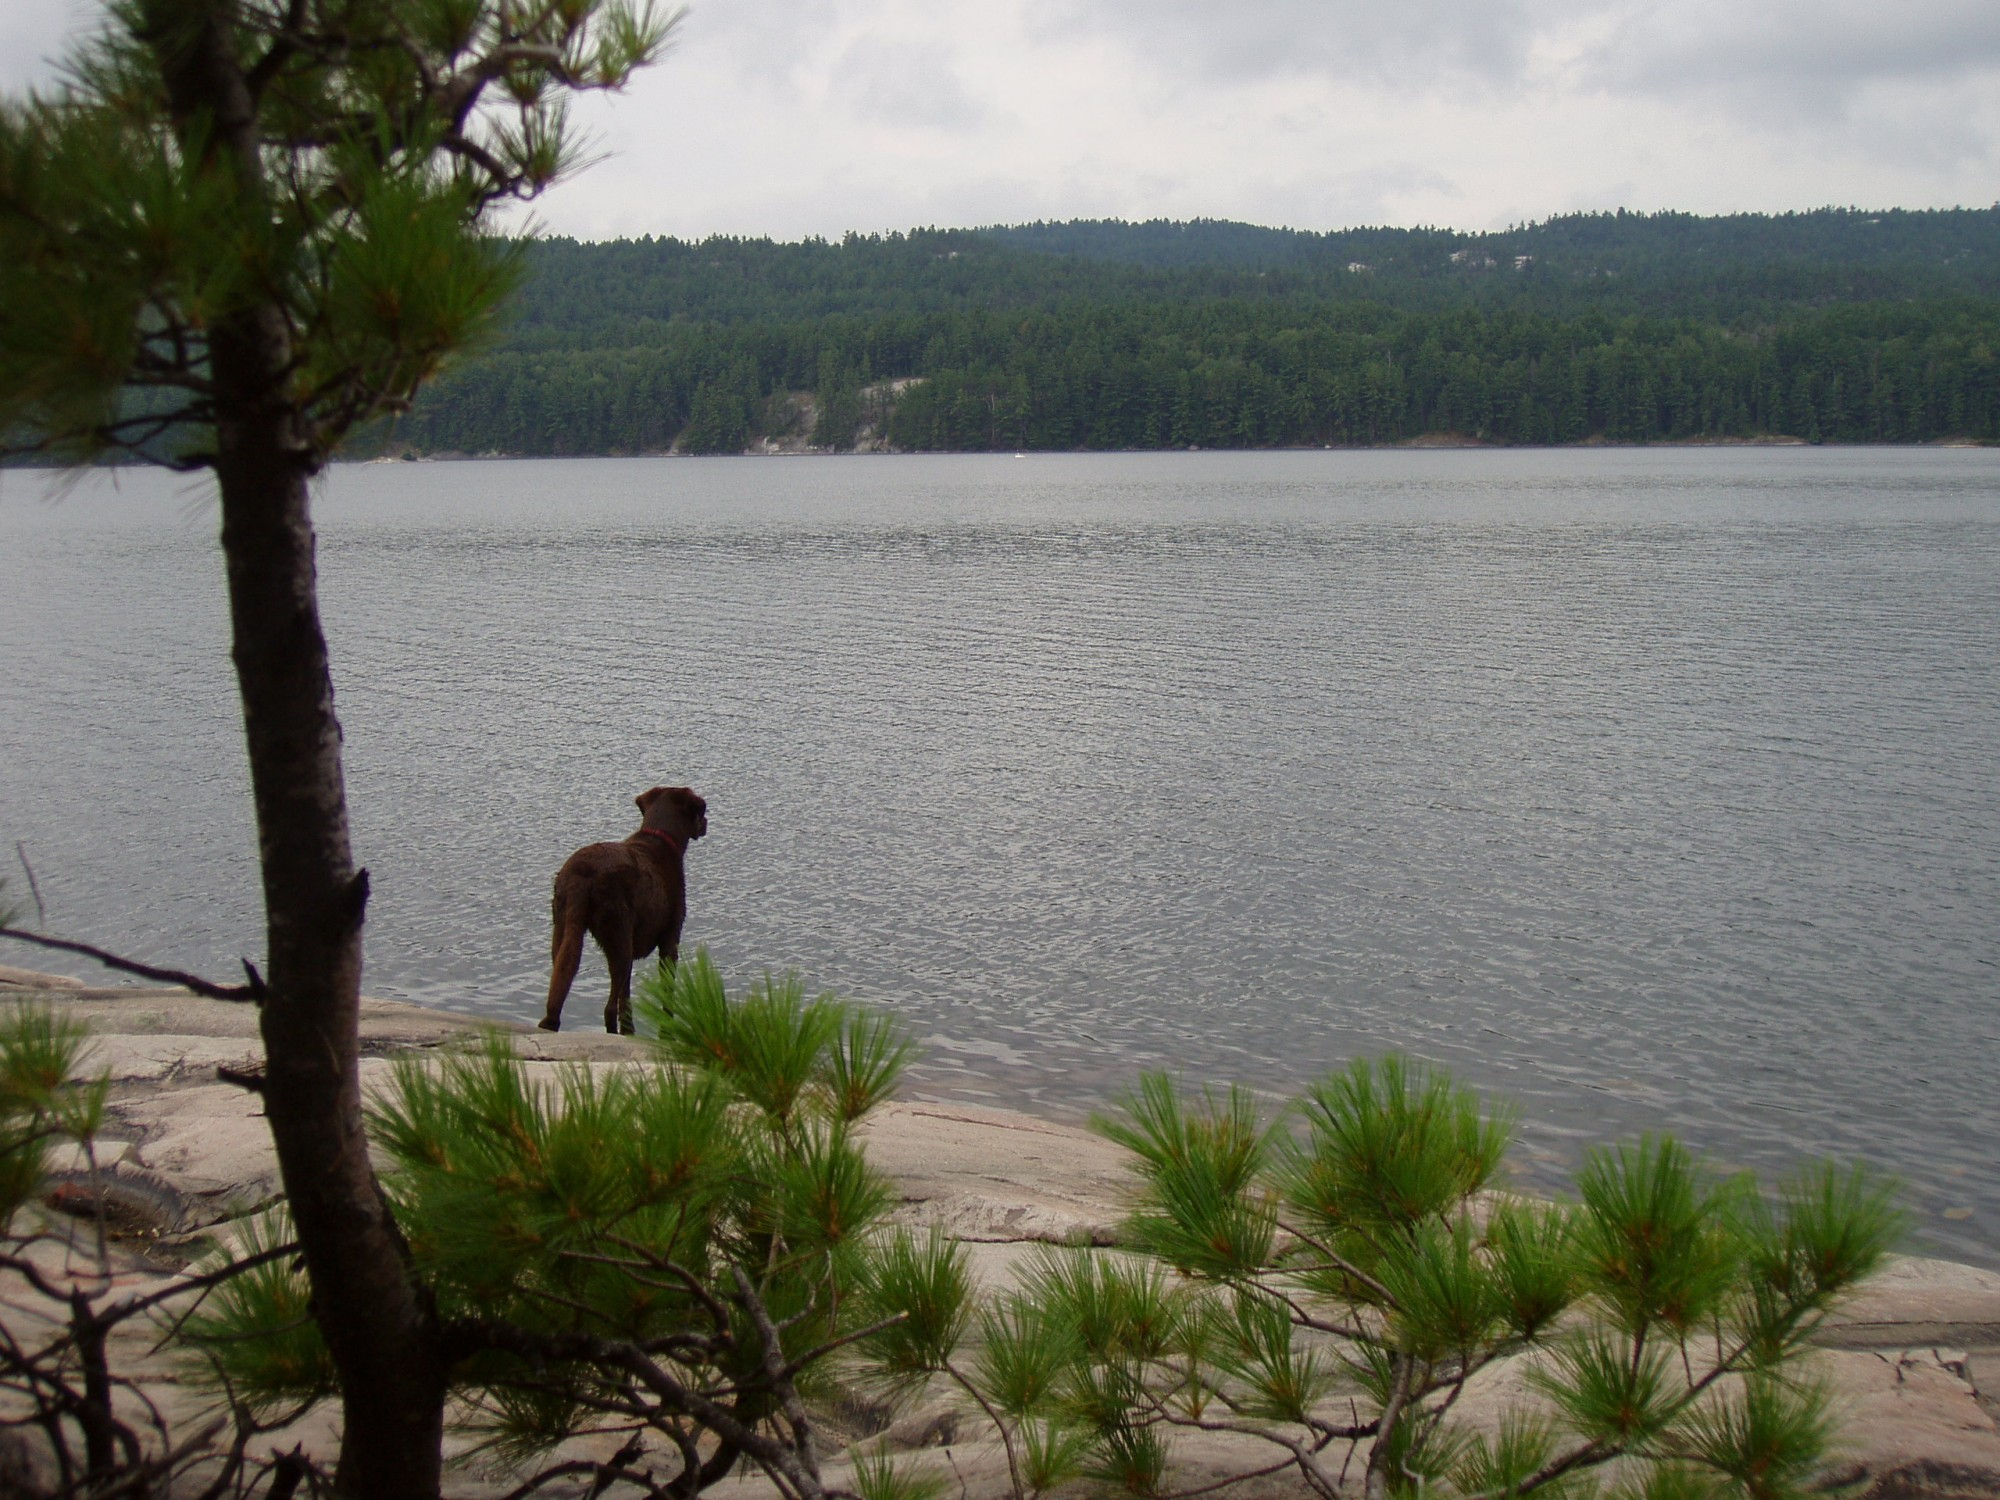 dog looking out onto the water